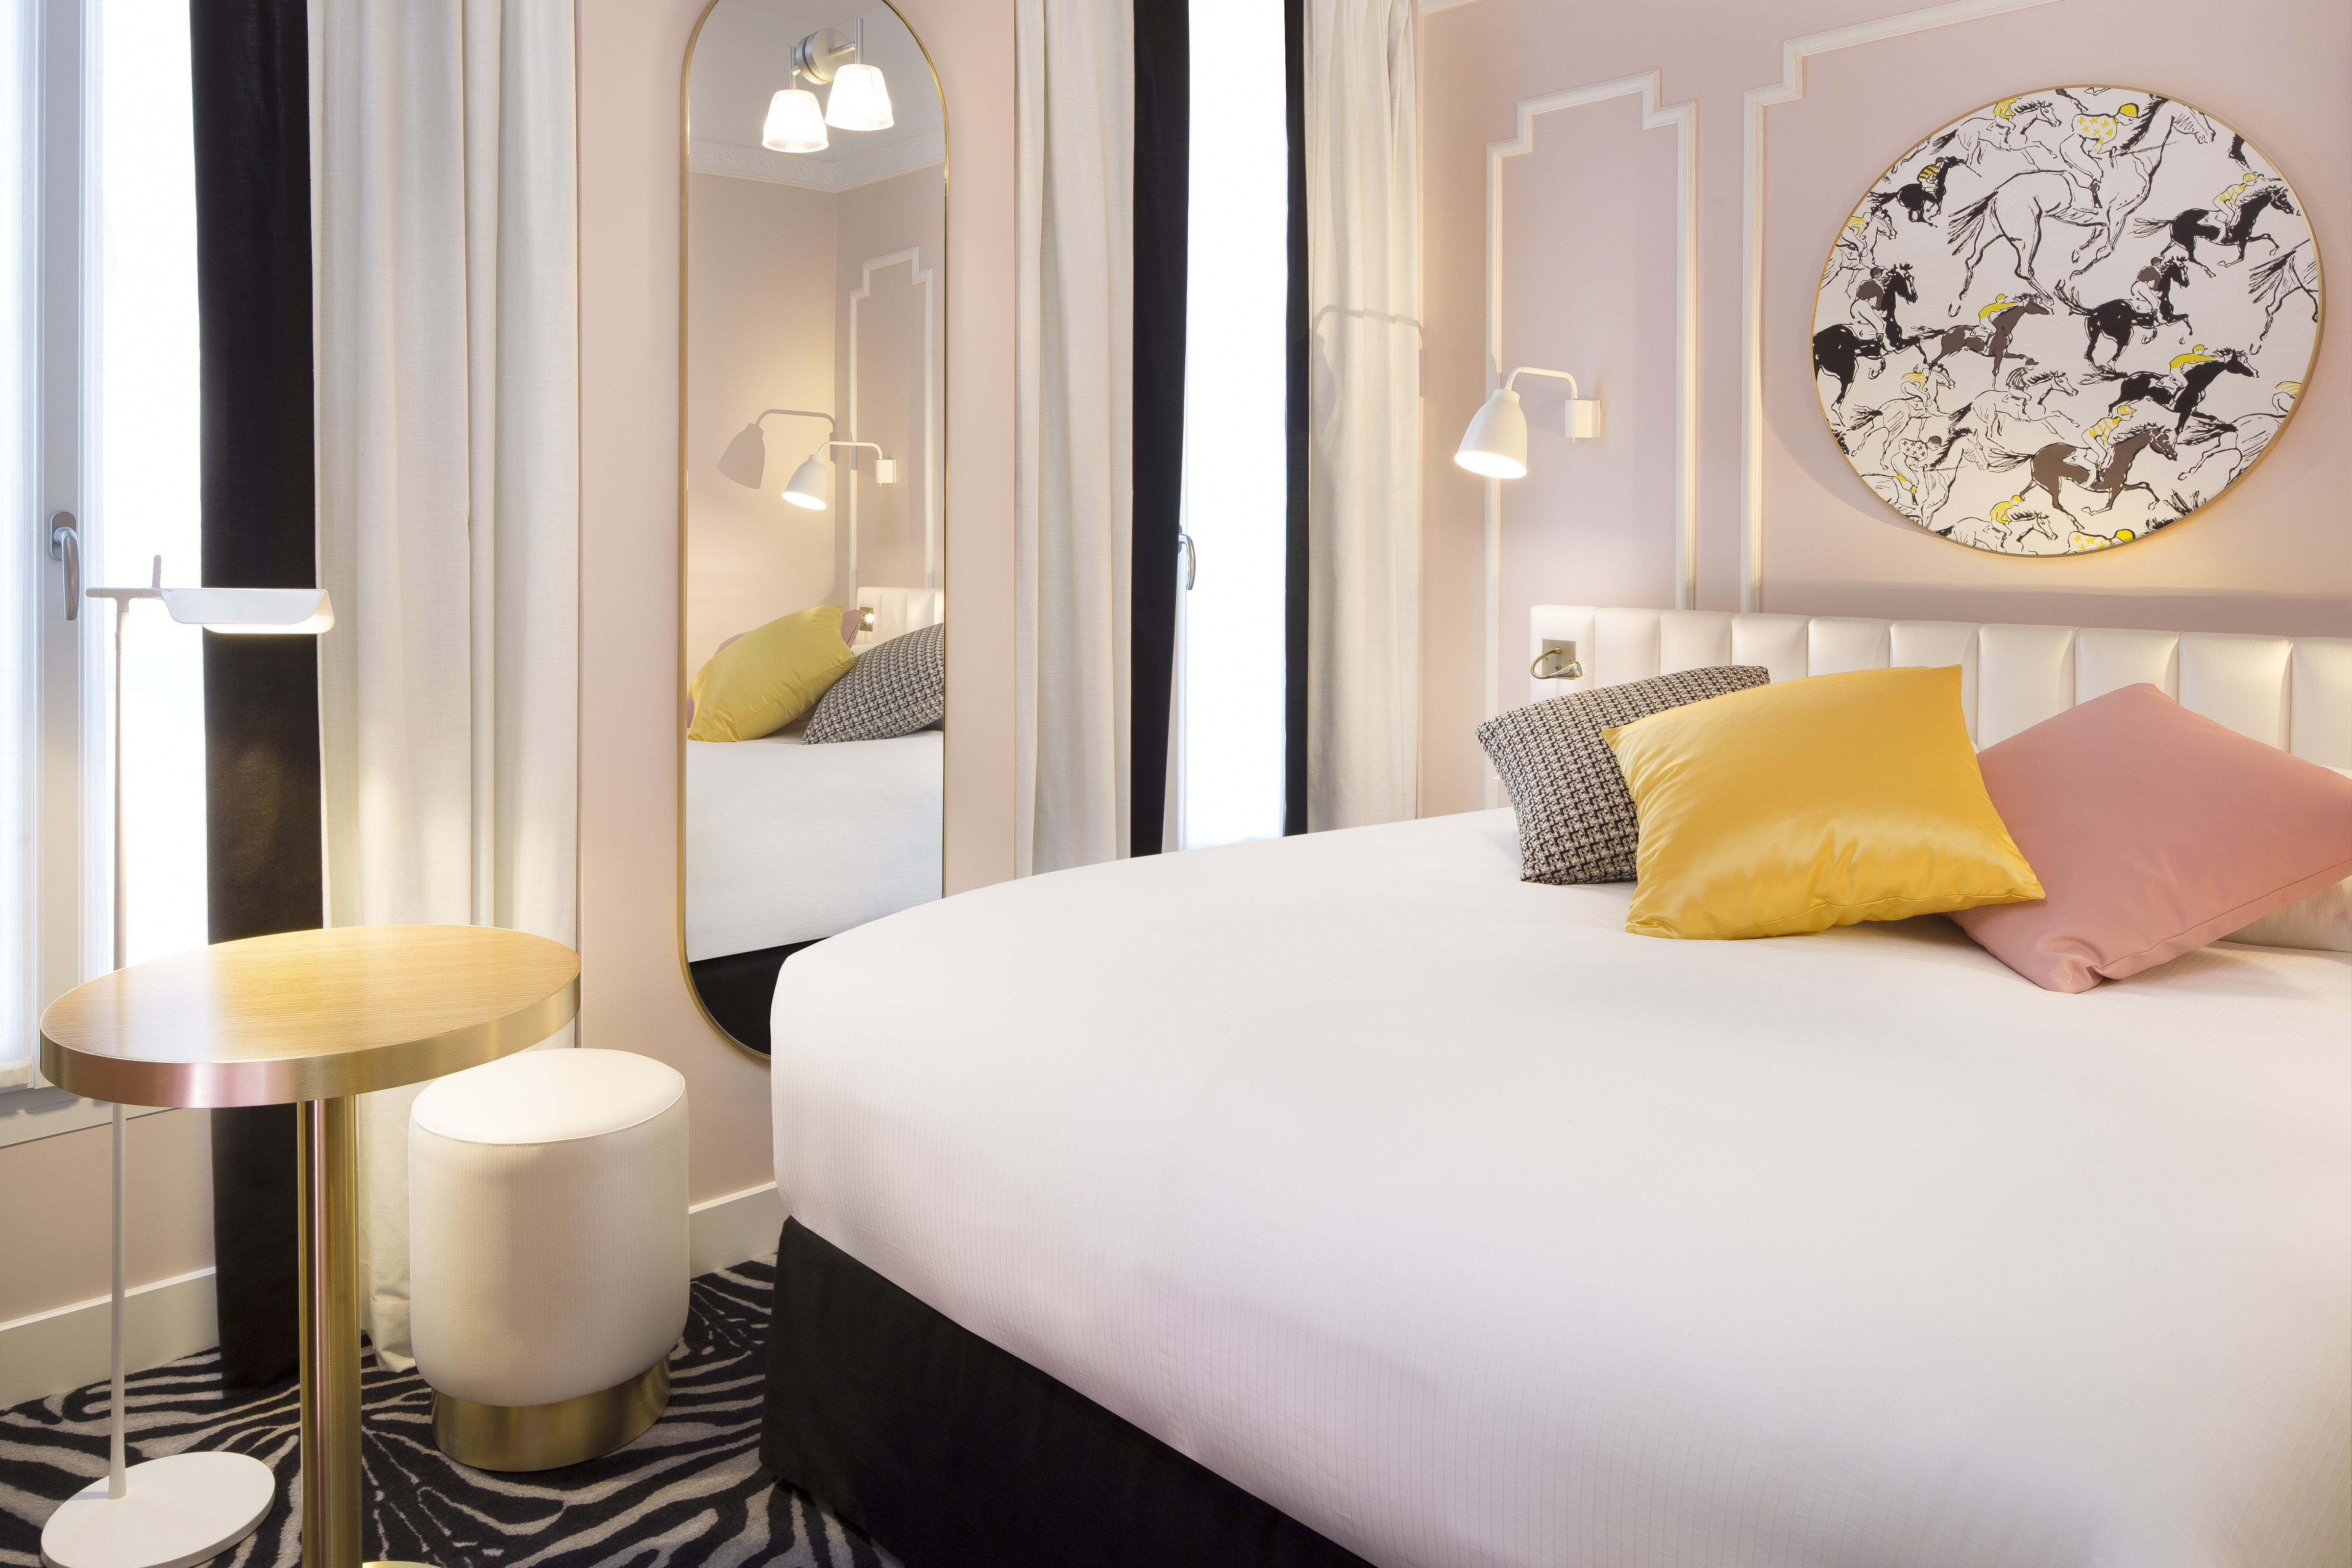 board rooms and hotels bed architecture city en cabinn hotel room